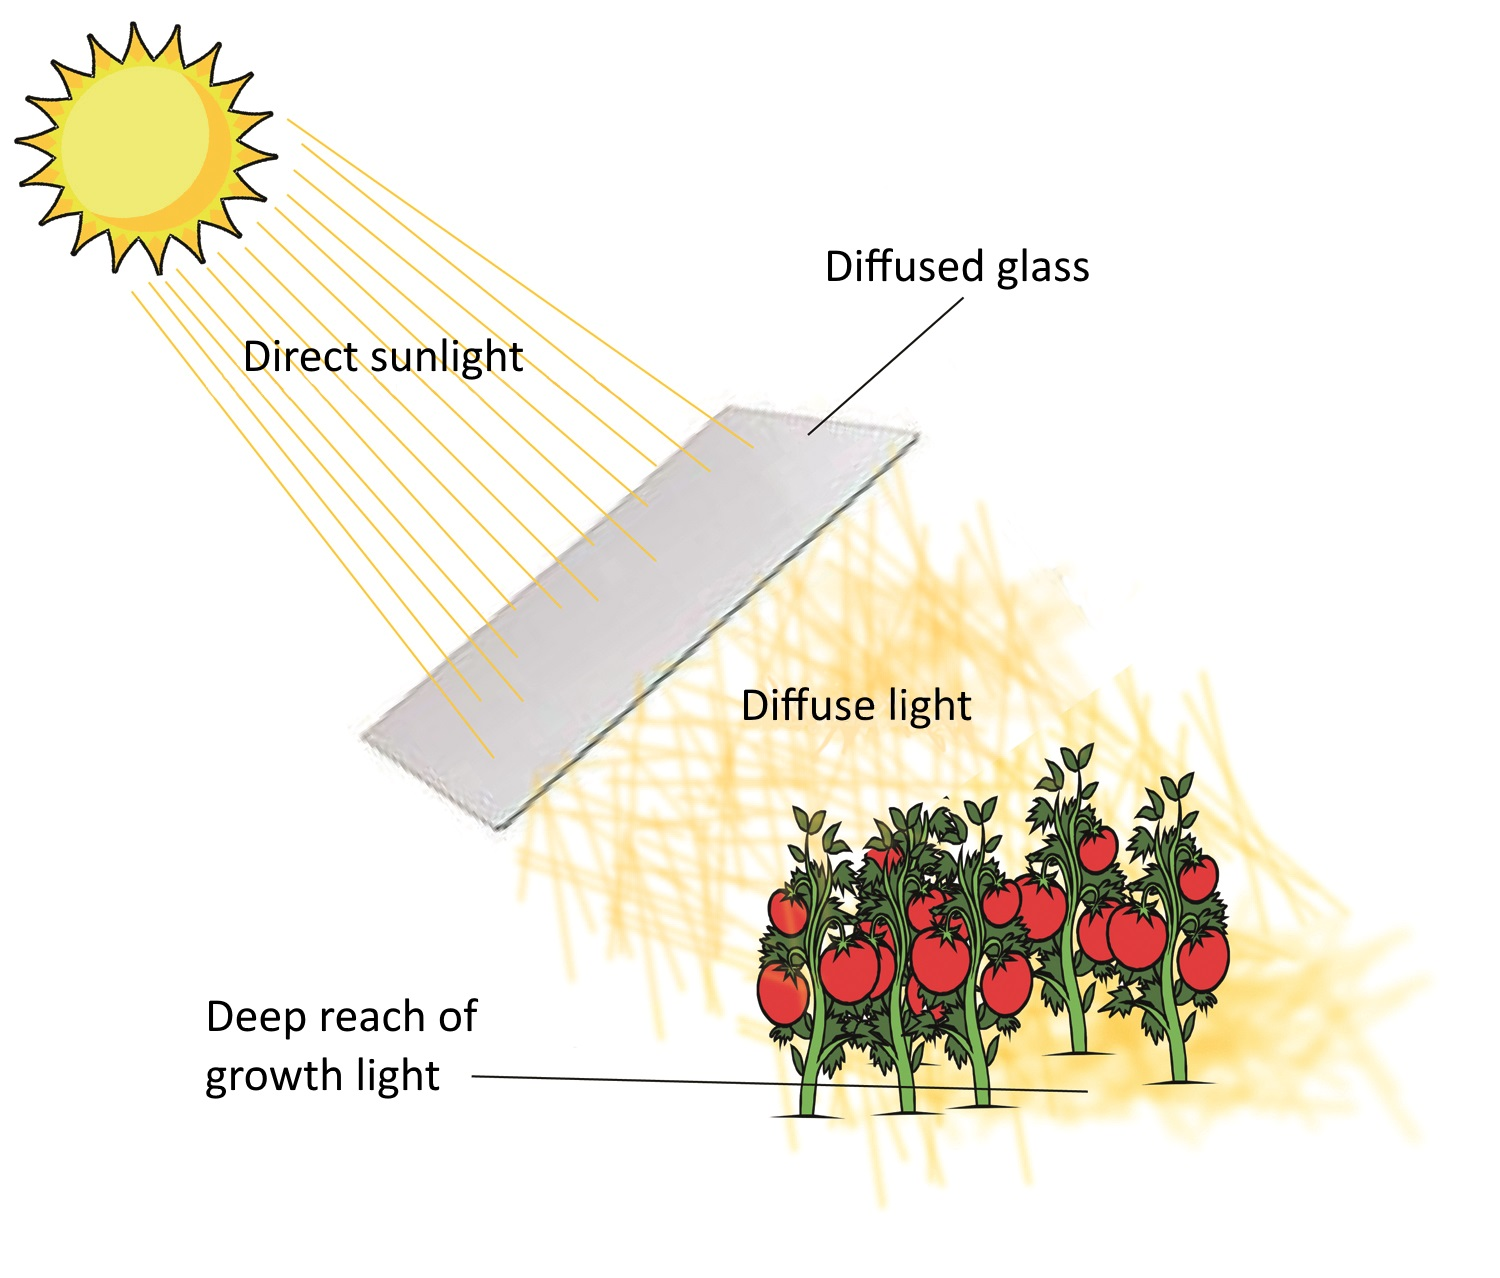 Functioning of diffuse light